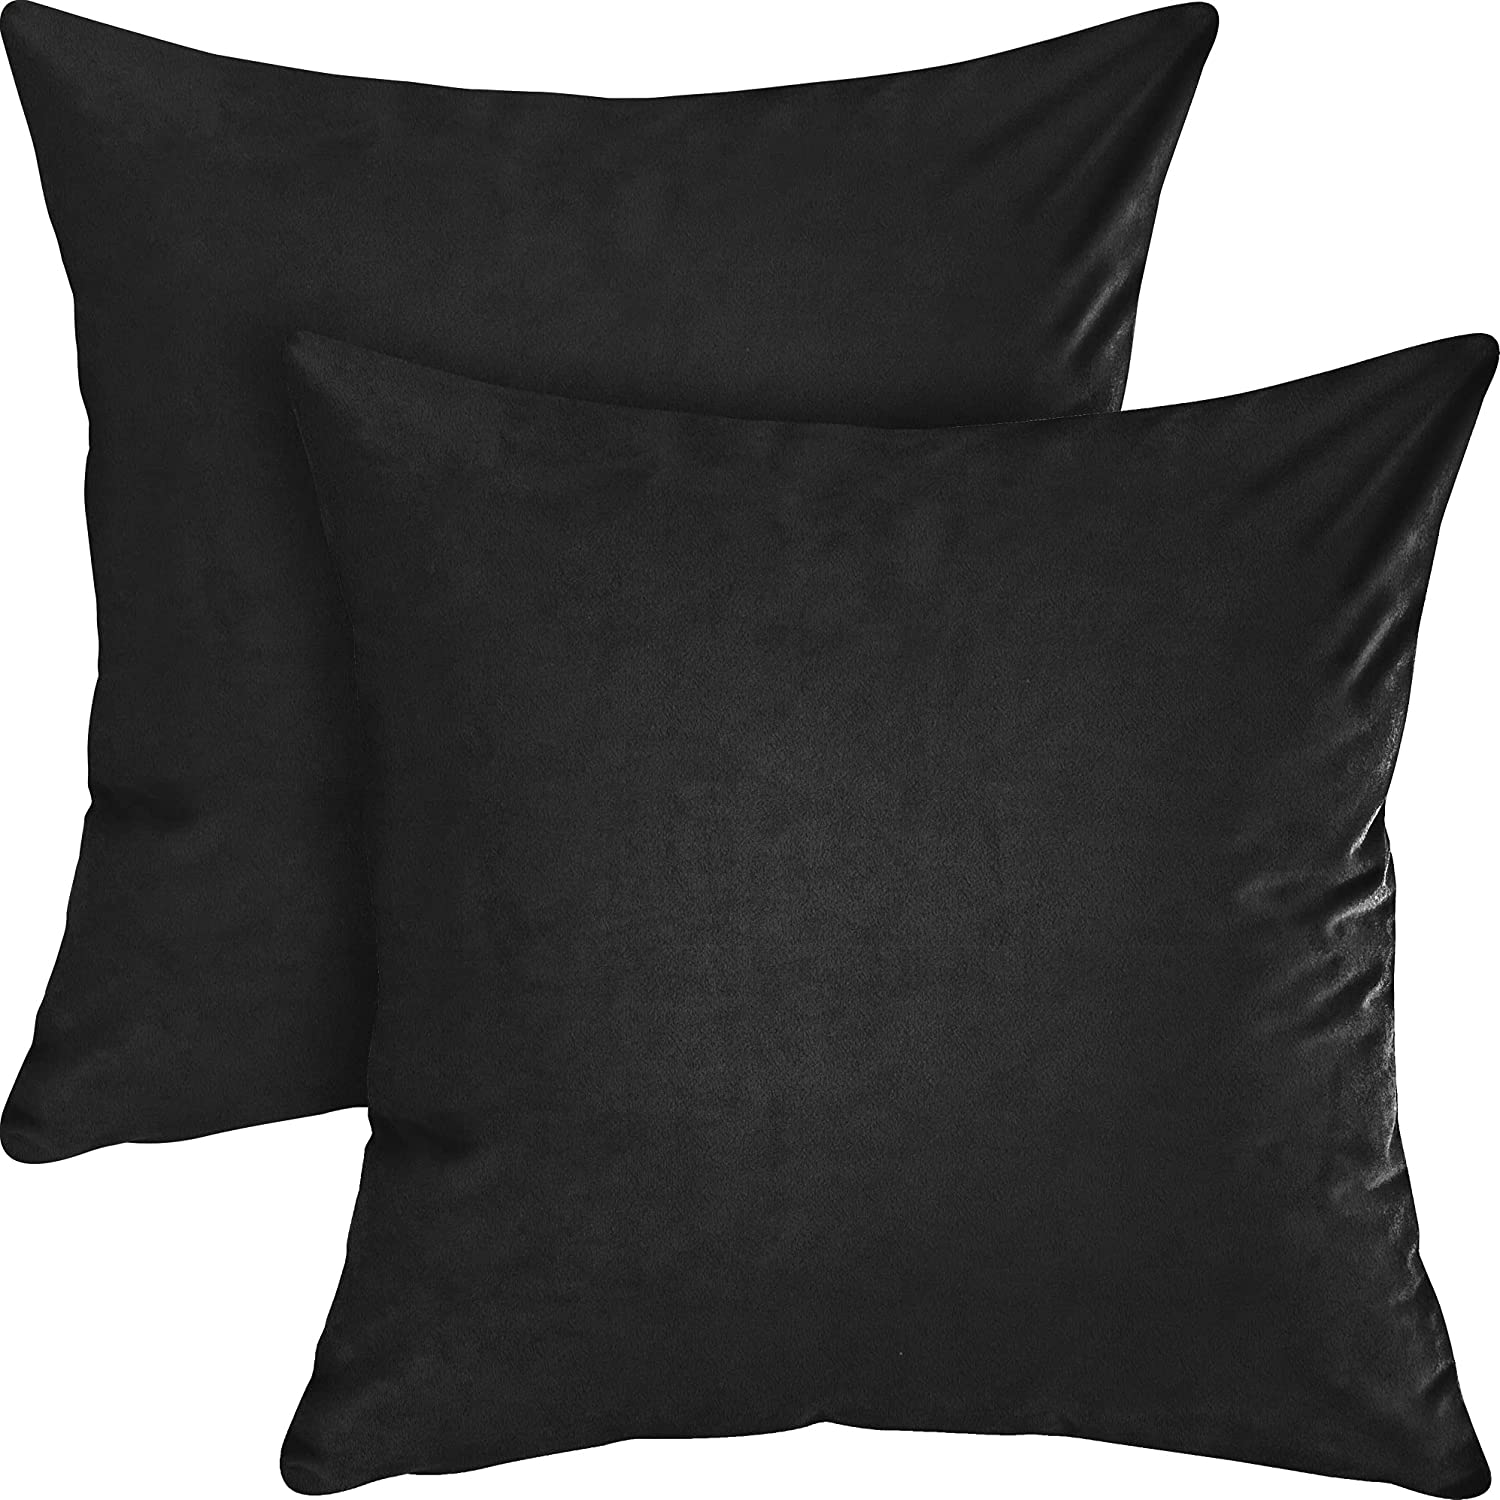 Utopia Bedding Soft Velvet Fleece Decorative Square Cushion Covers (Pack of 2) - Throw Pillow Cases with Zipper - Sofa Bedroom Car Pillow Covers (18 x 18 Inch, Black)